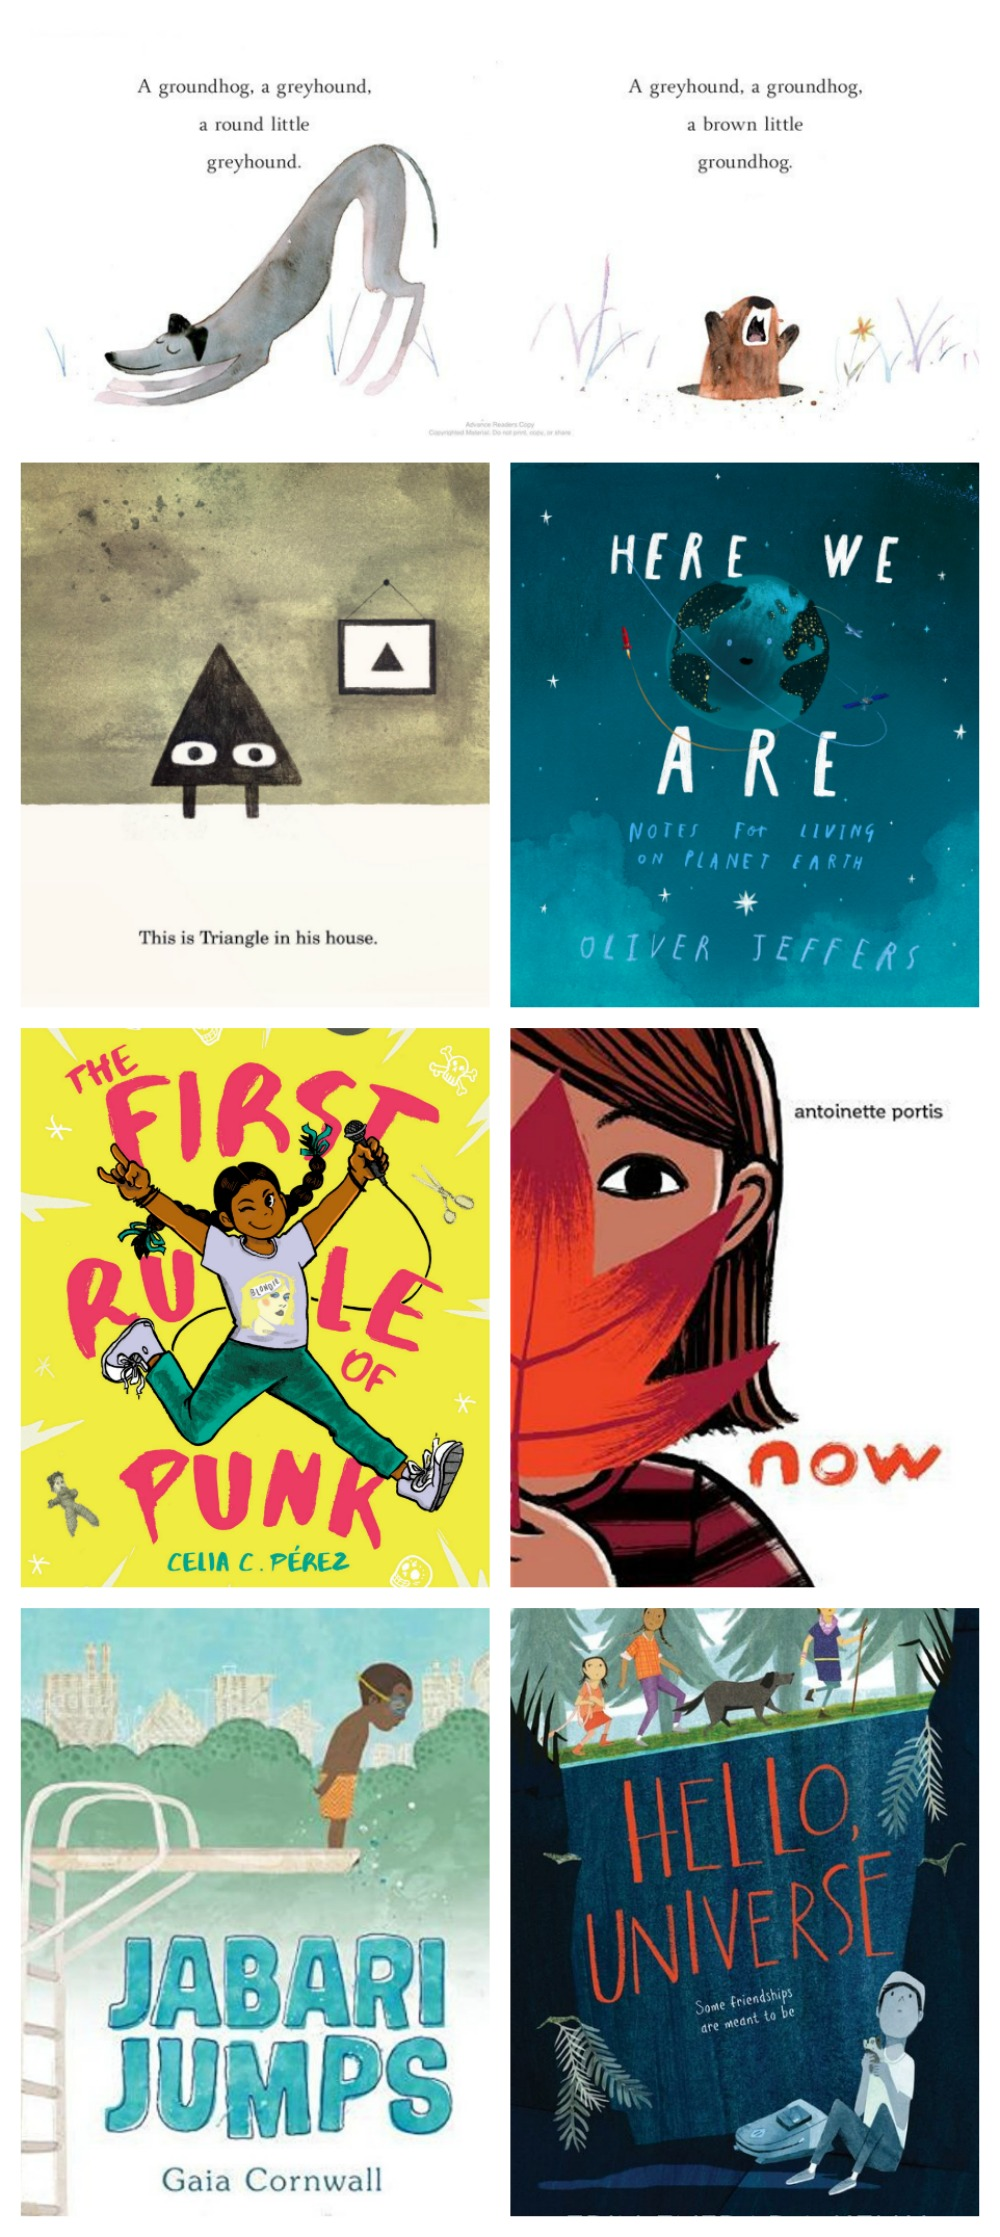 Best children's books of 2017: Selections from the book reviewers at NPR